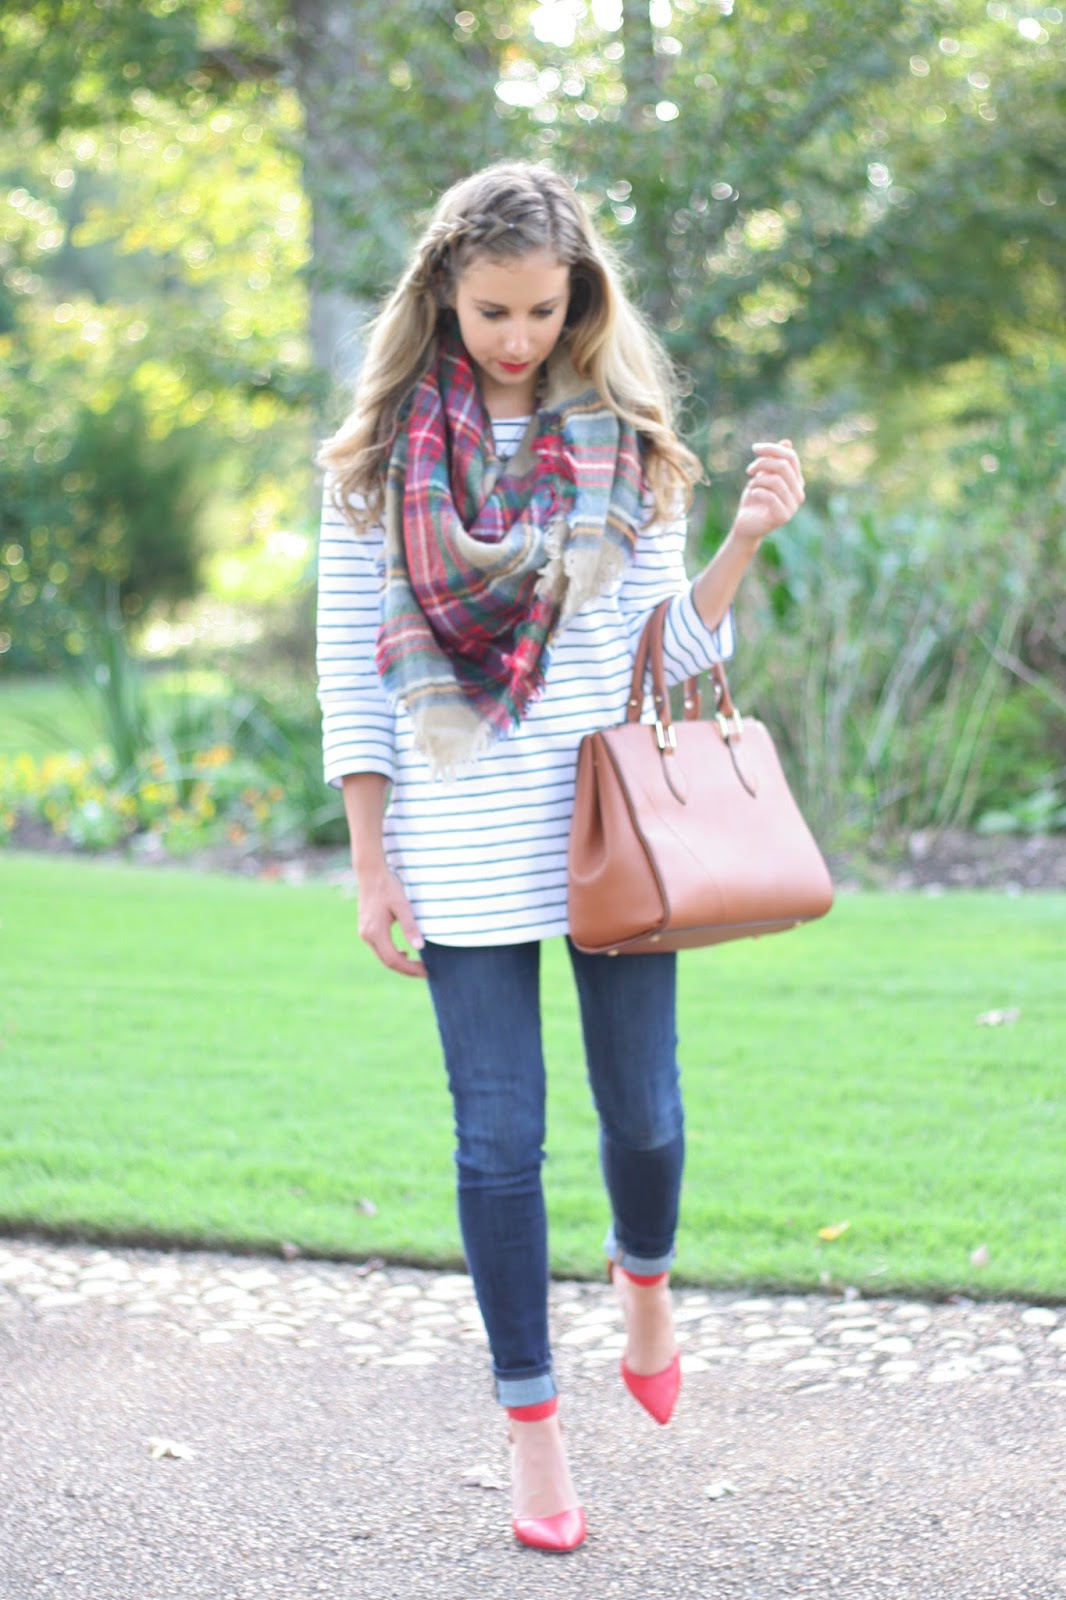 Layering-patters-for-fall - Combining-stripes-with-plaid!